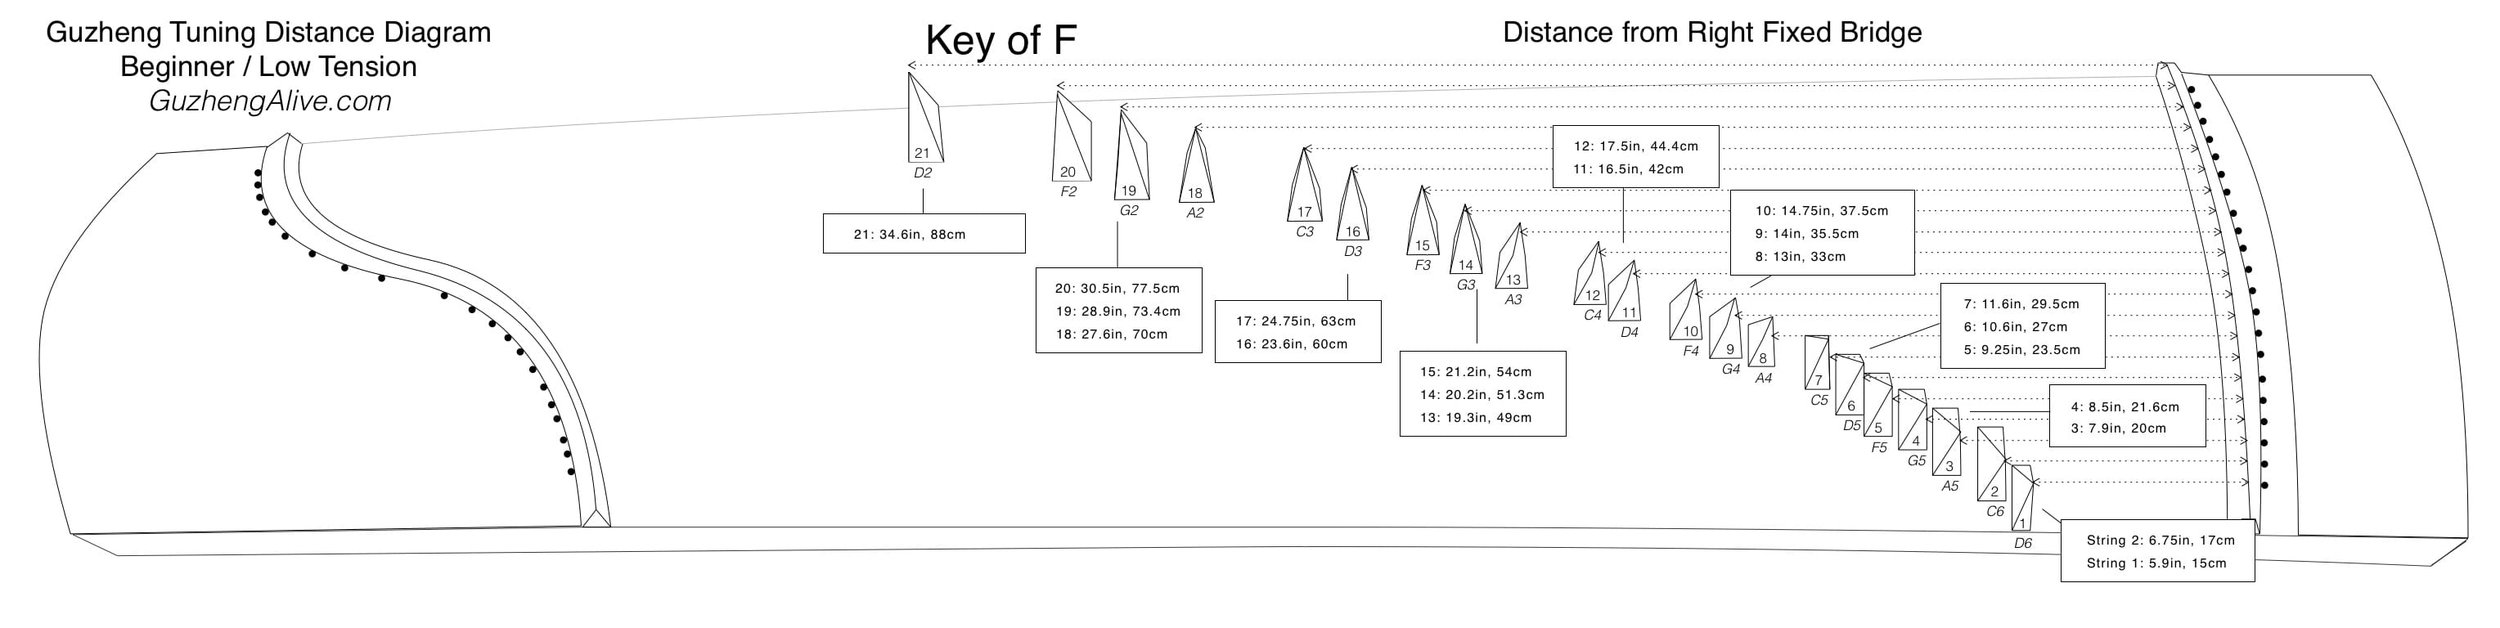 Key of F Guzheng Tuning Diagram.jpg